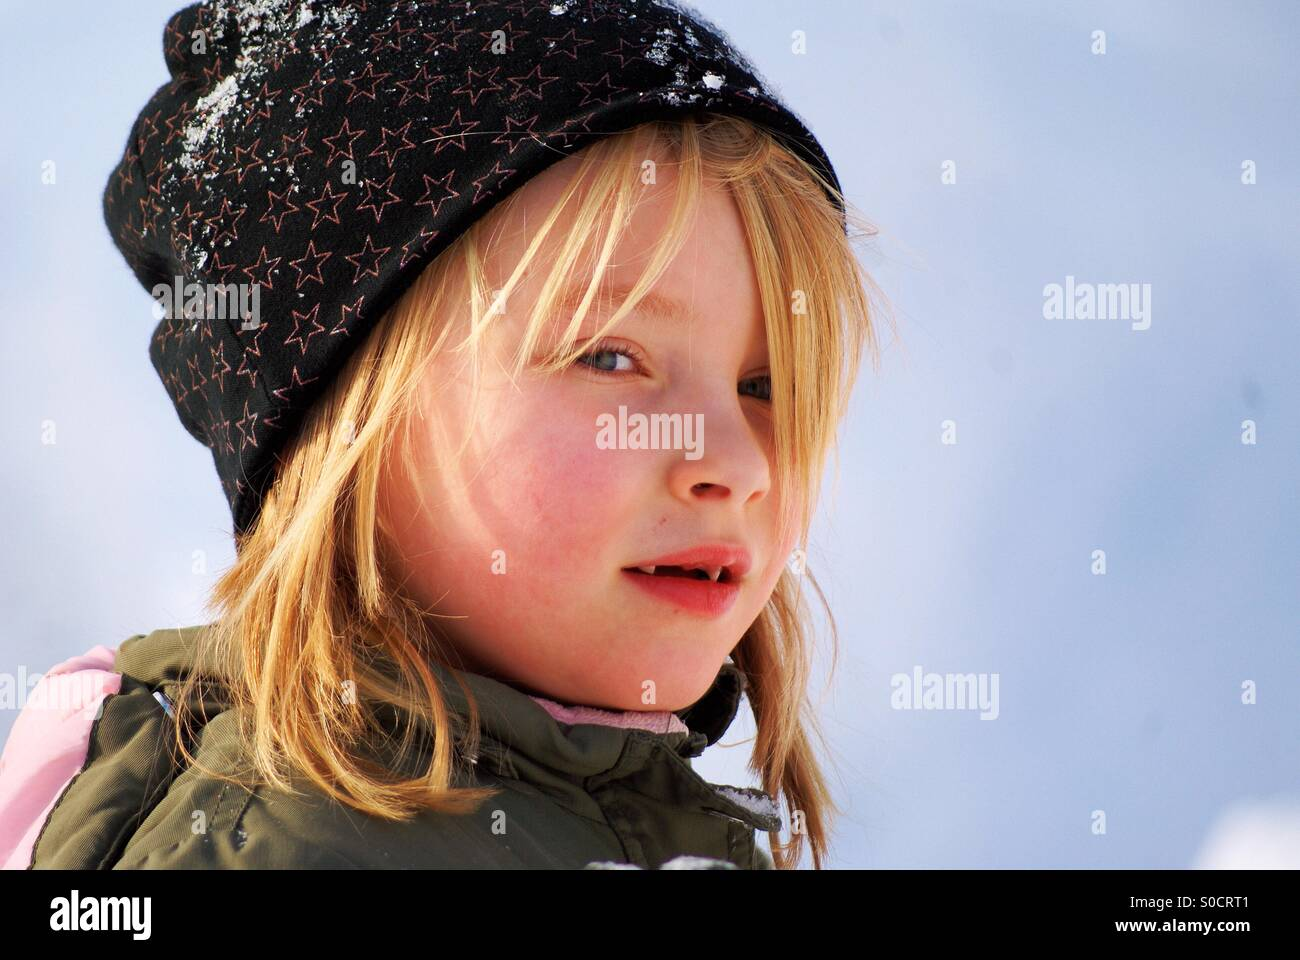 Girl with a that seem to think about something - Stock Image